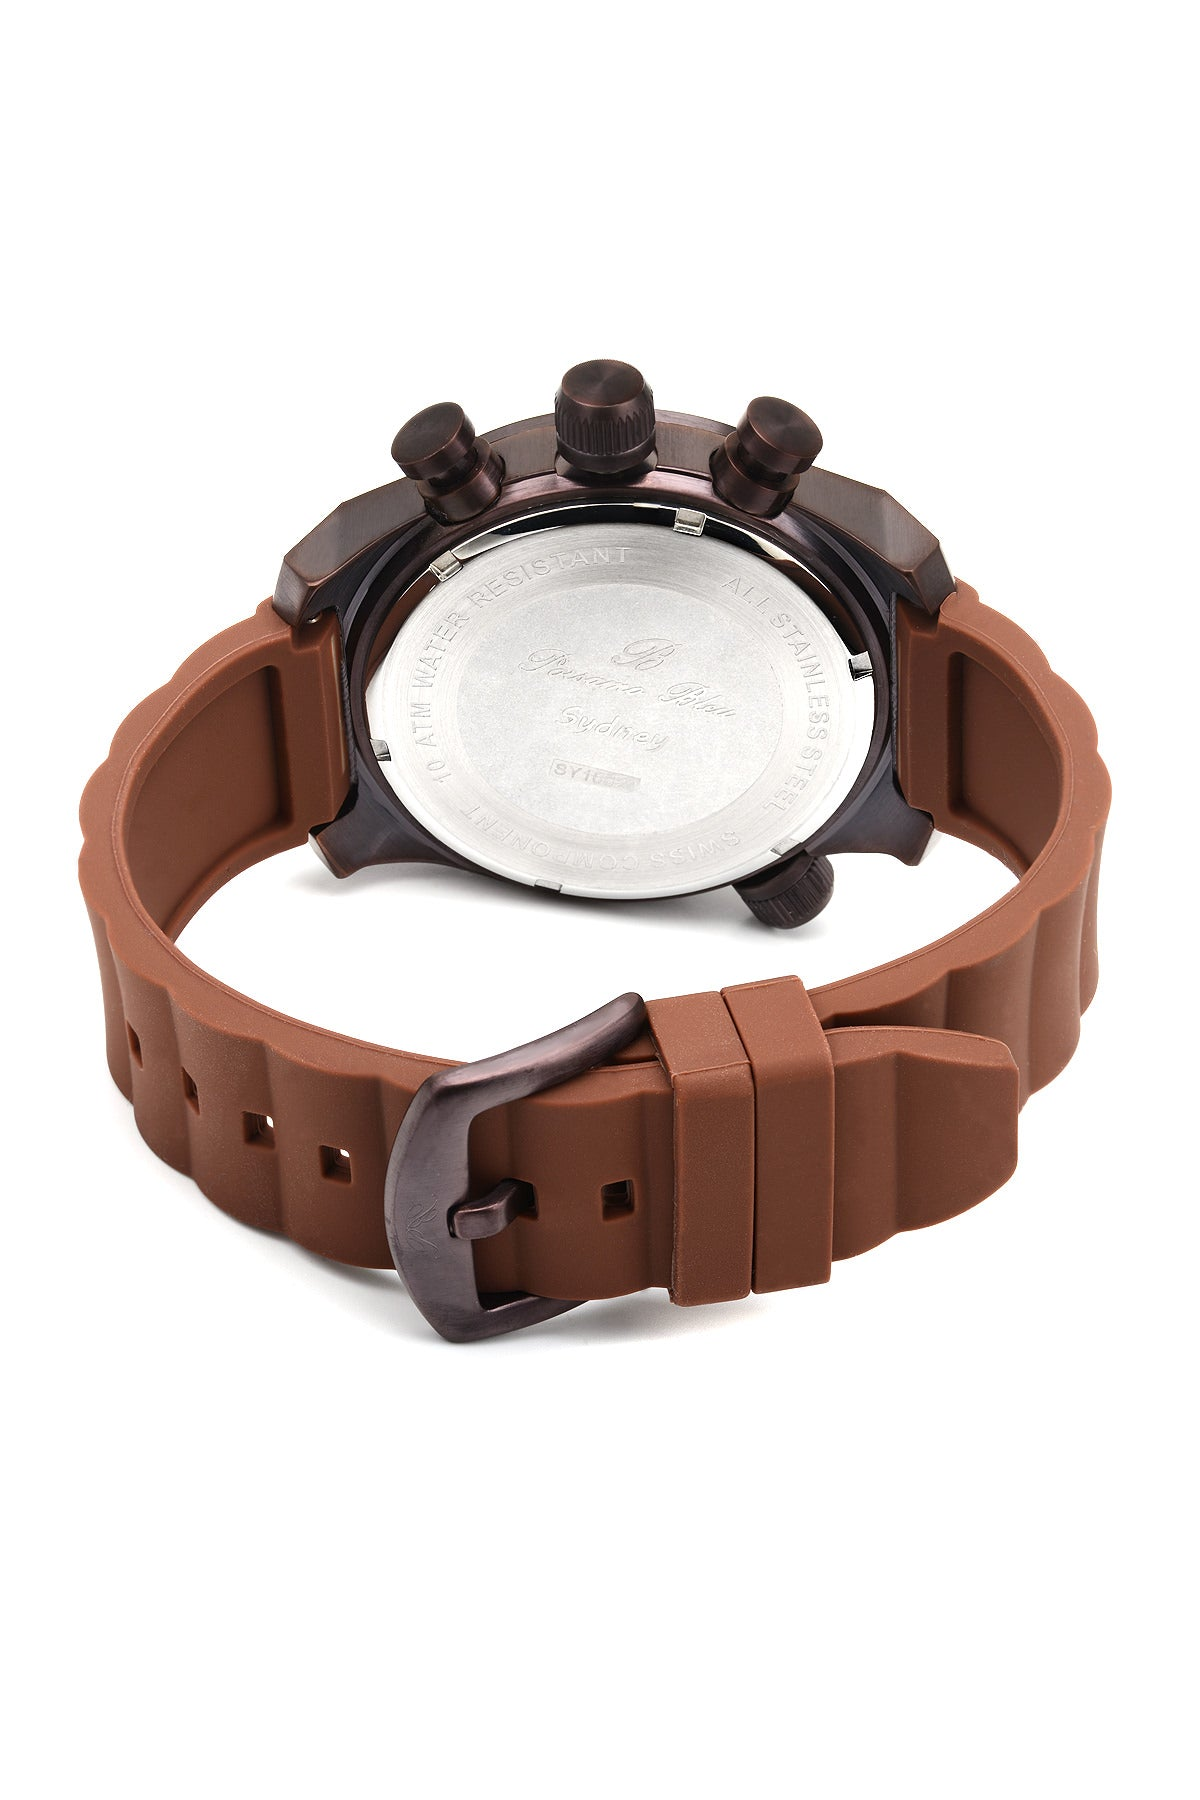 Porsamo Bleu Sydney luxury men's watch, silicone strap, brown 165CSYR